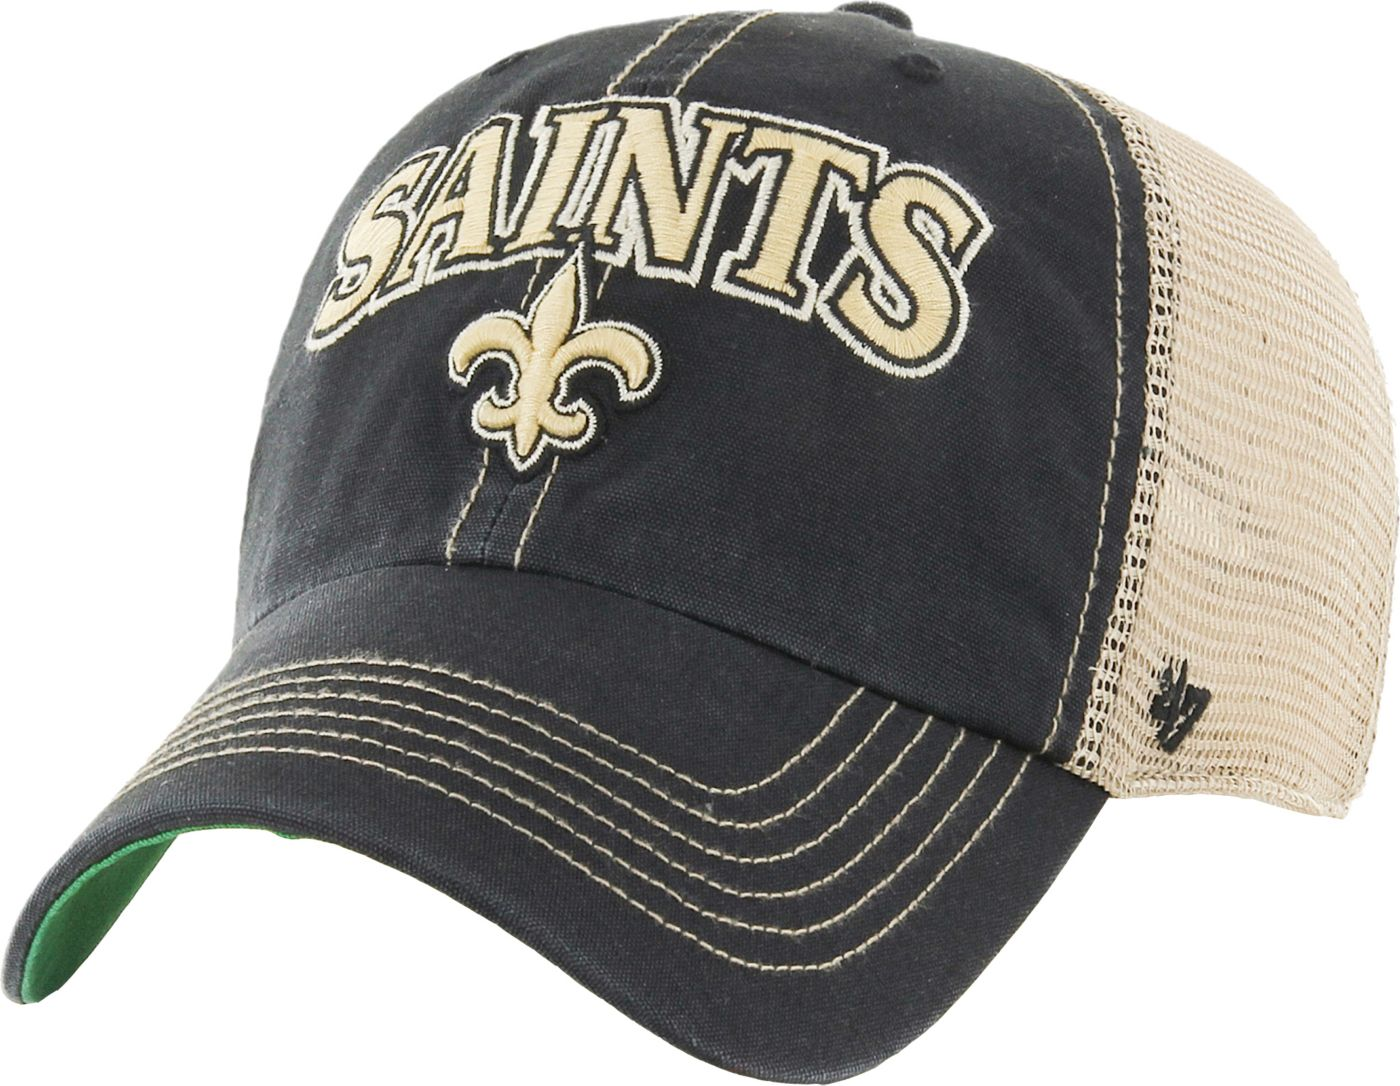 '47 Men's New Orleans Saints Vintage Tuscaloosa Black Adjustable Hat